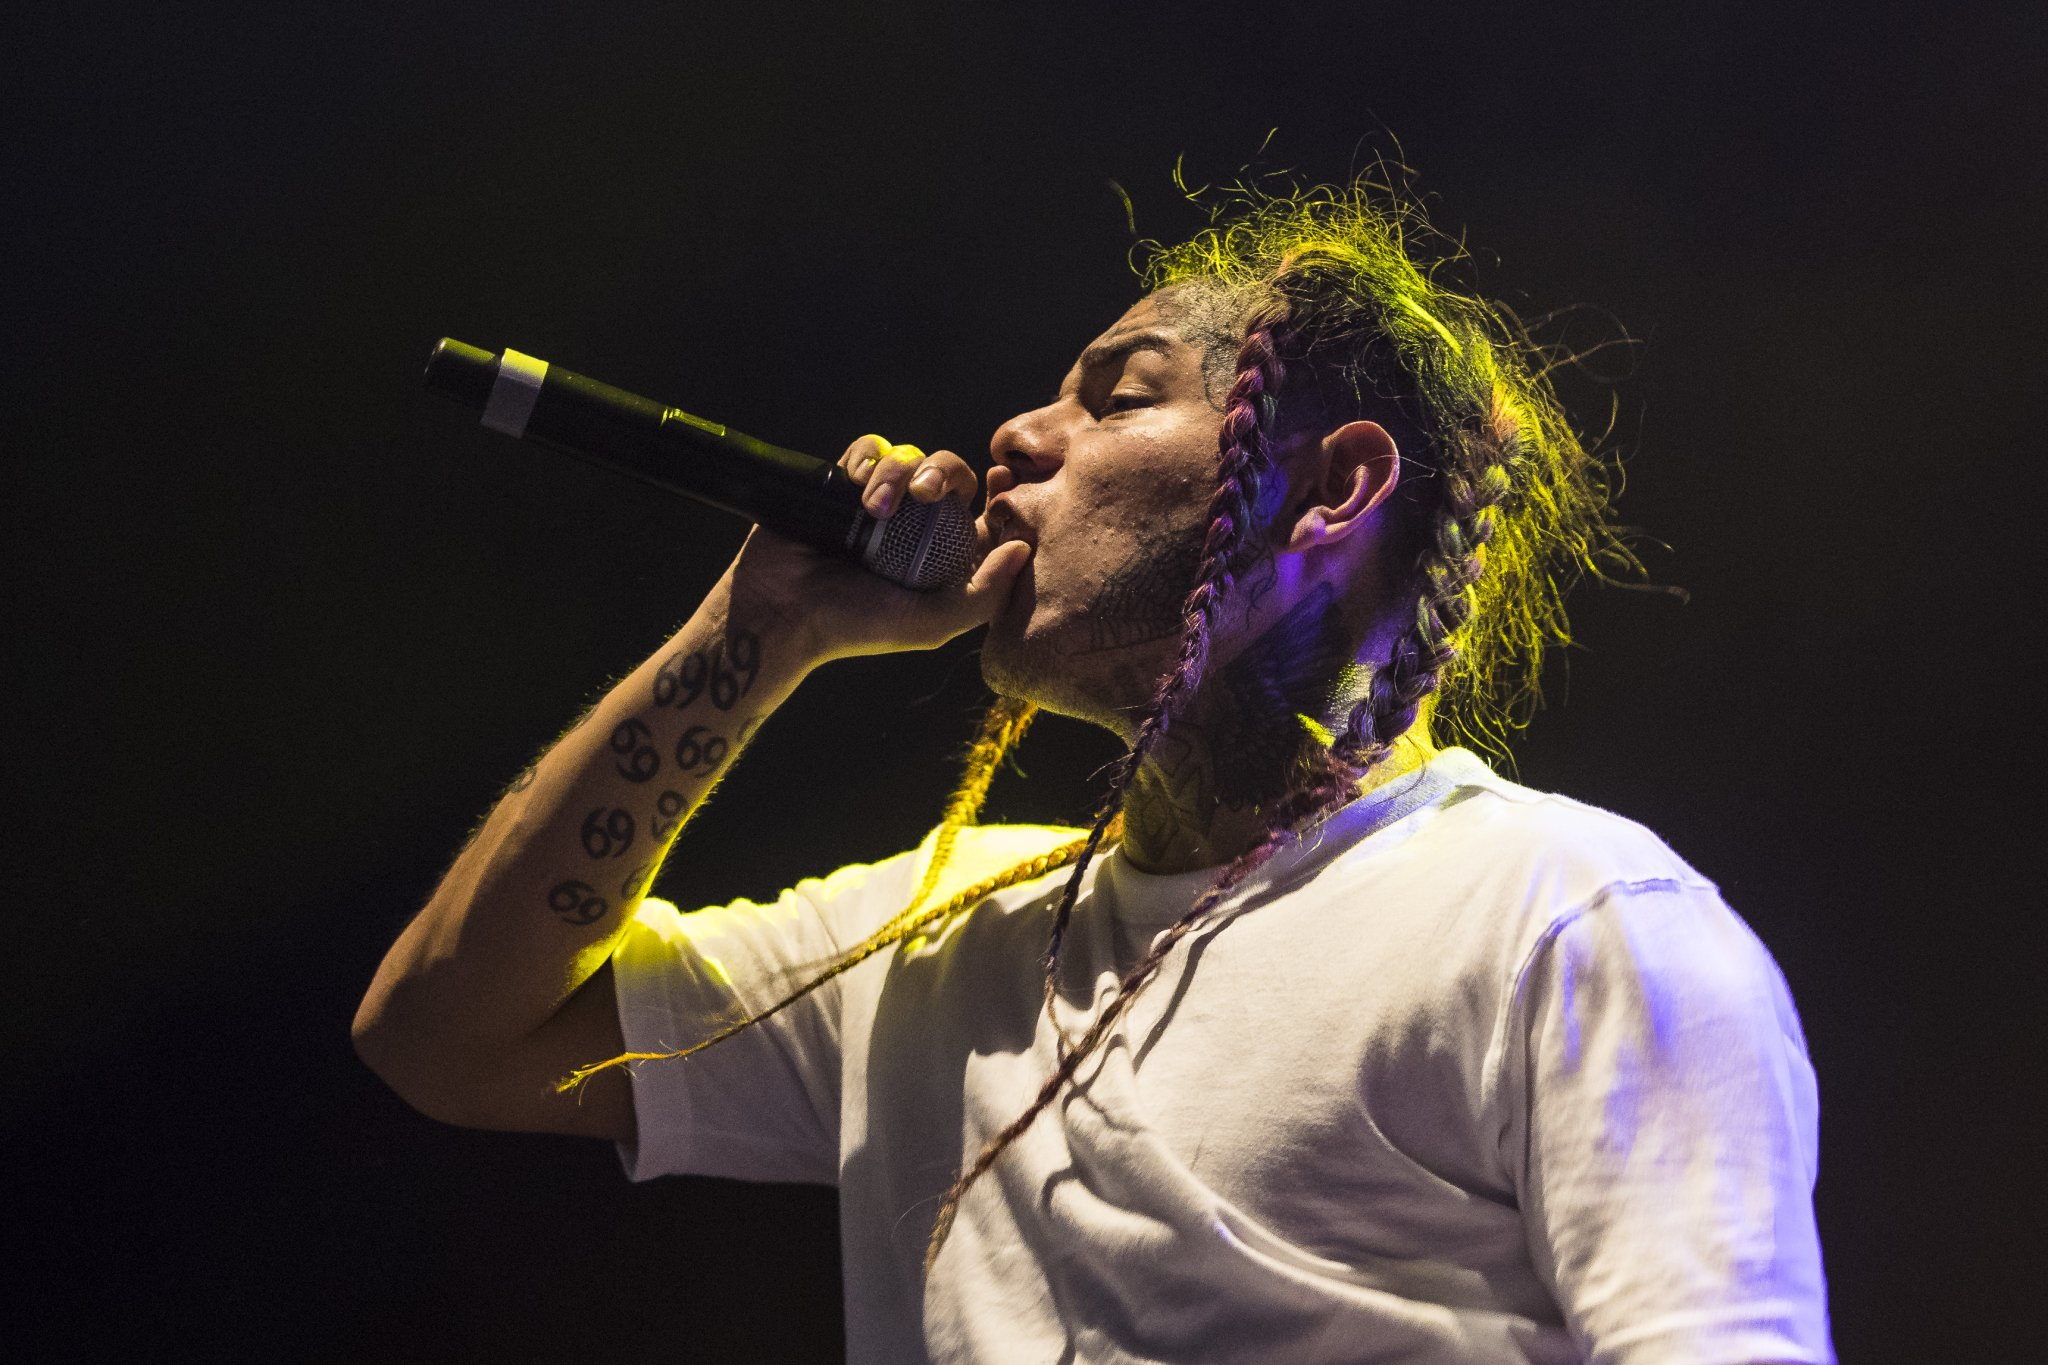 Tekashi 6ix9ine Just Gave A Hilarious, Terrifying Interview To The New York Times - BroBible